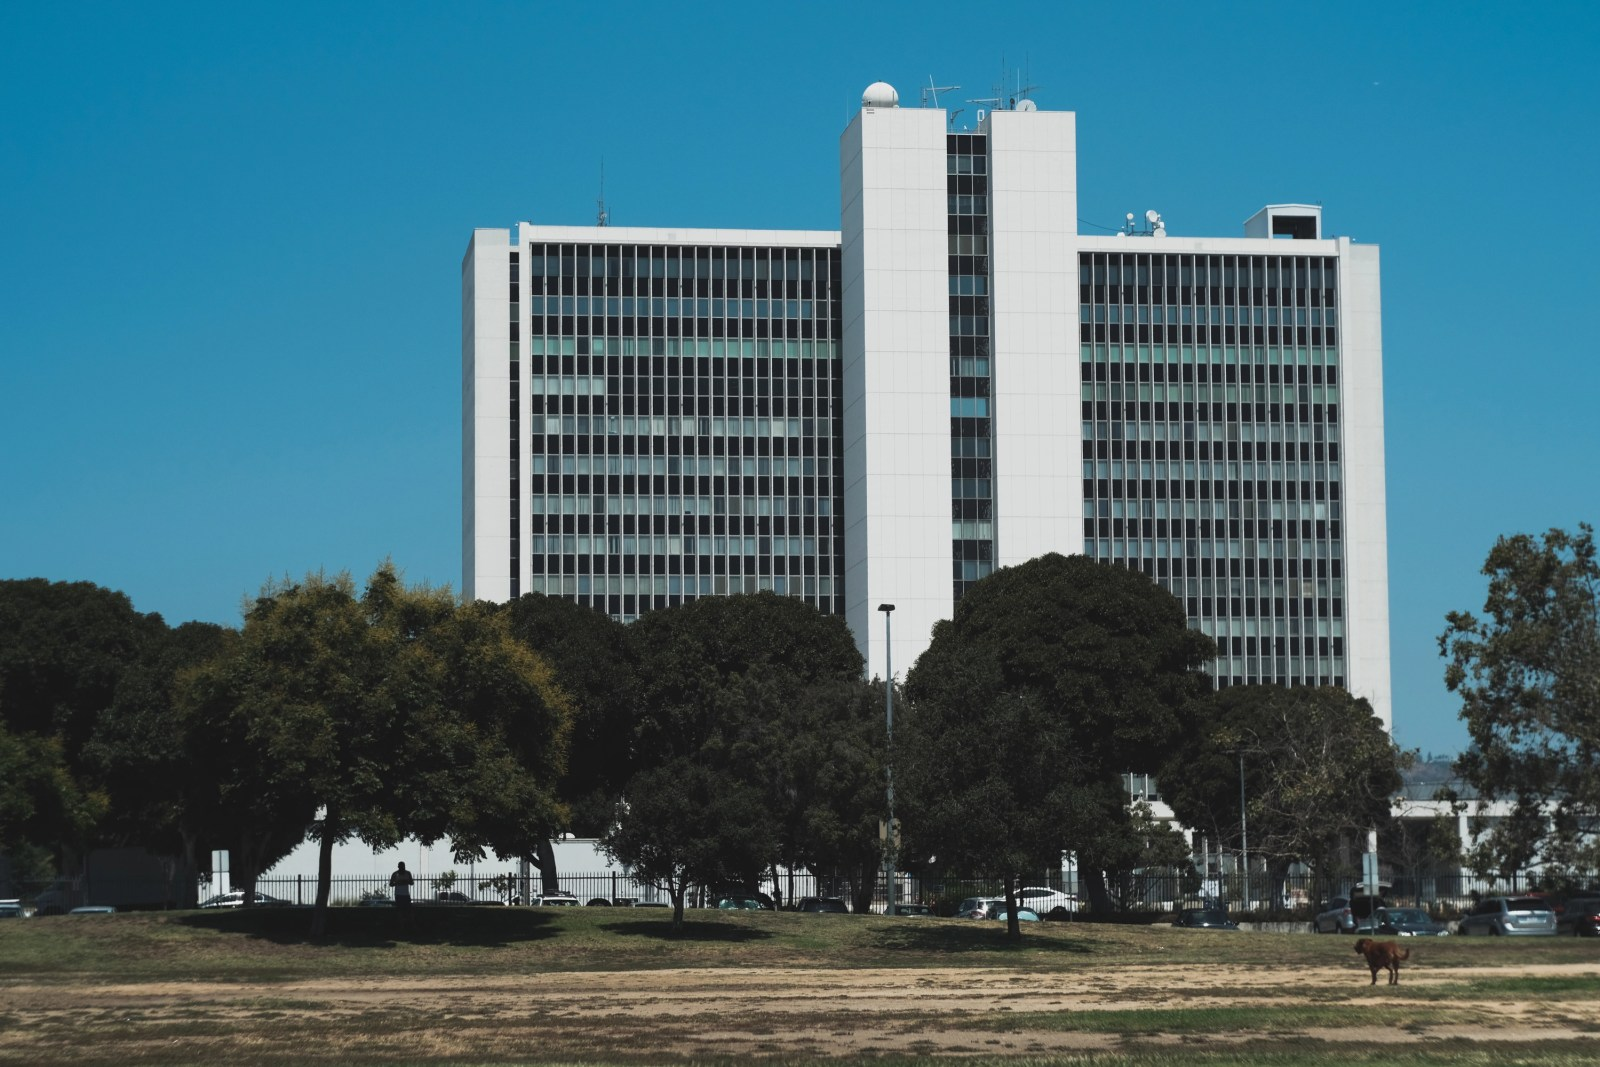 Fujifilm X-T2 with the Helios 44-2 | FBI building, Westood Los Angeles